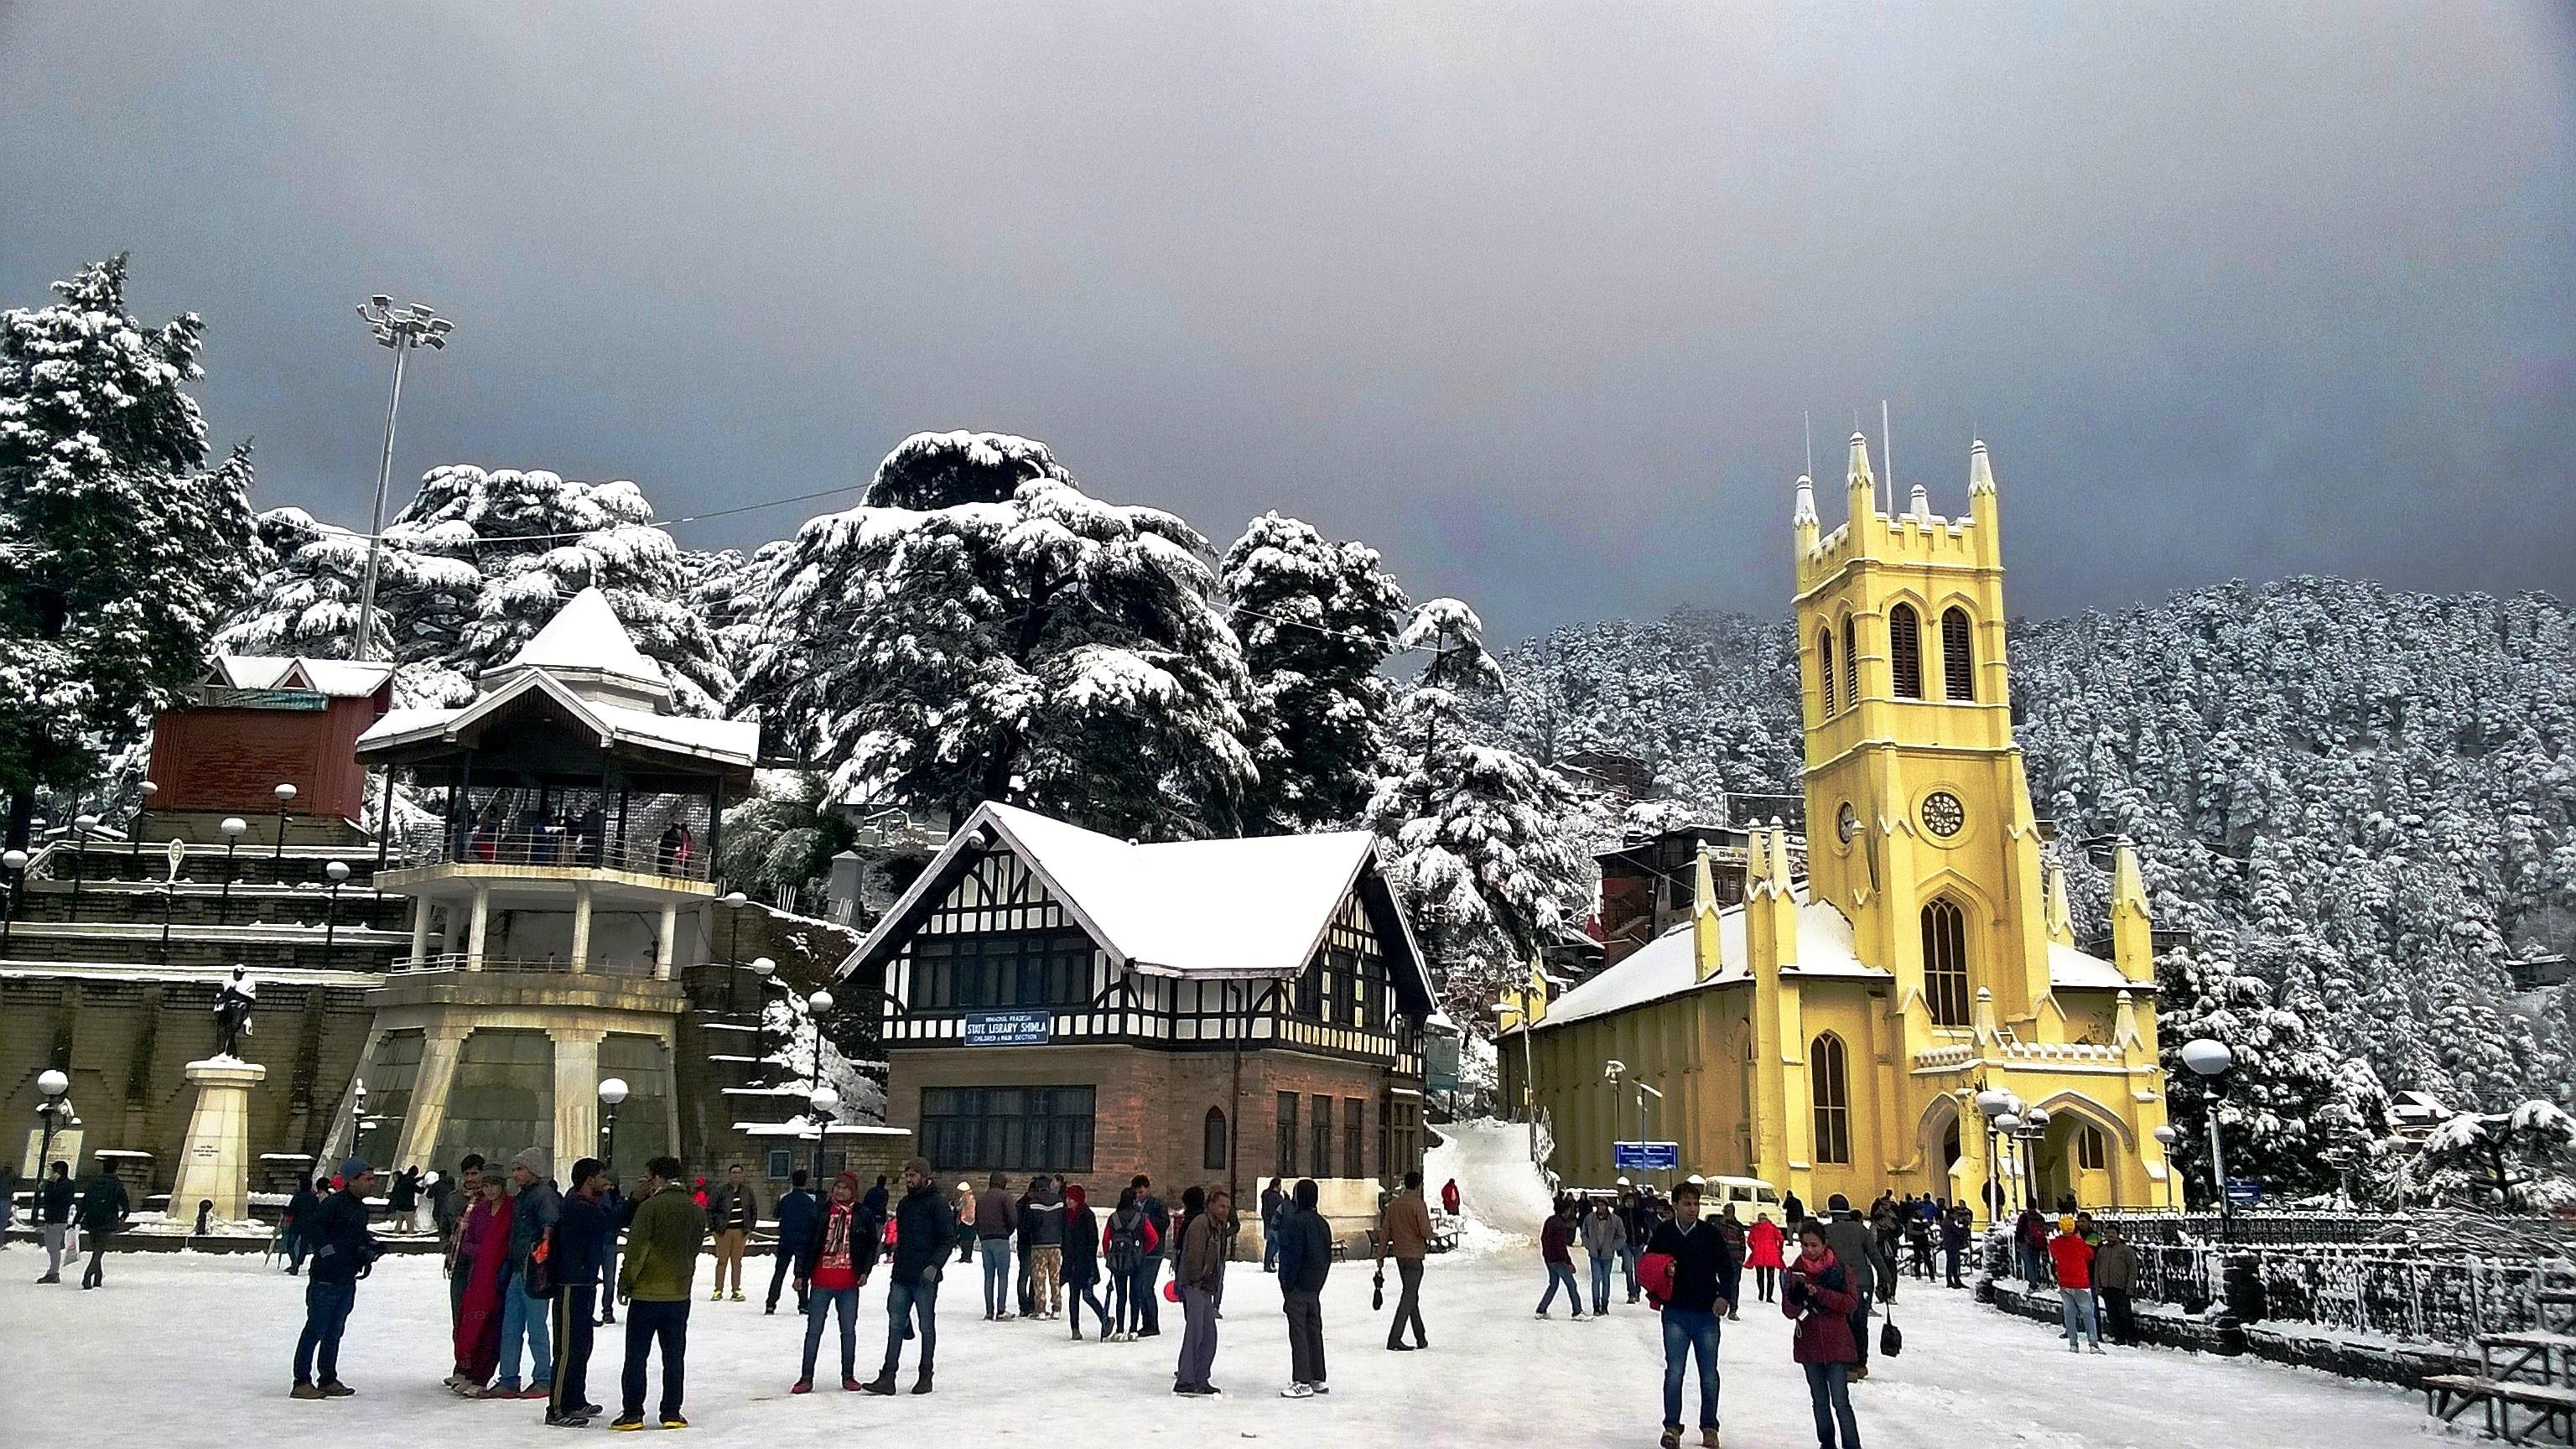 Shimla Manali 7N/8D package from Chandigarh